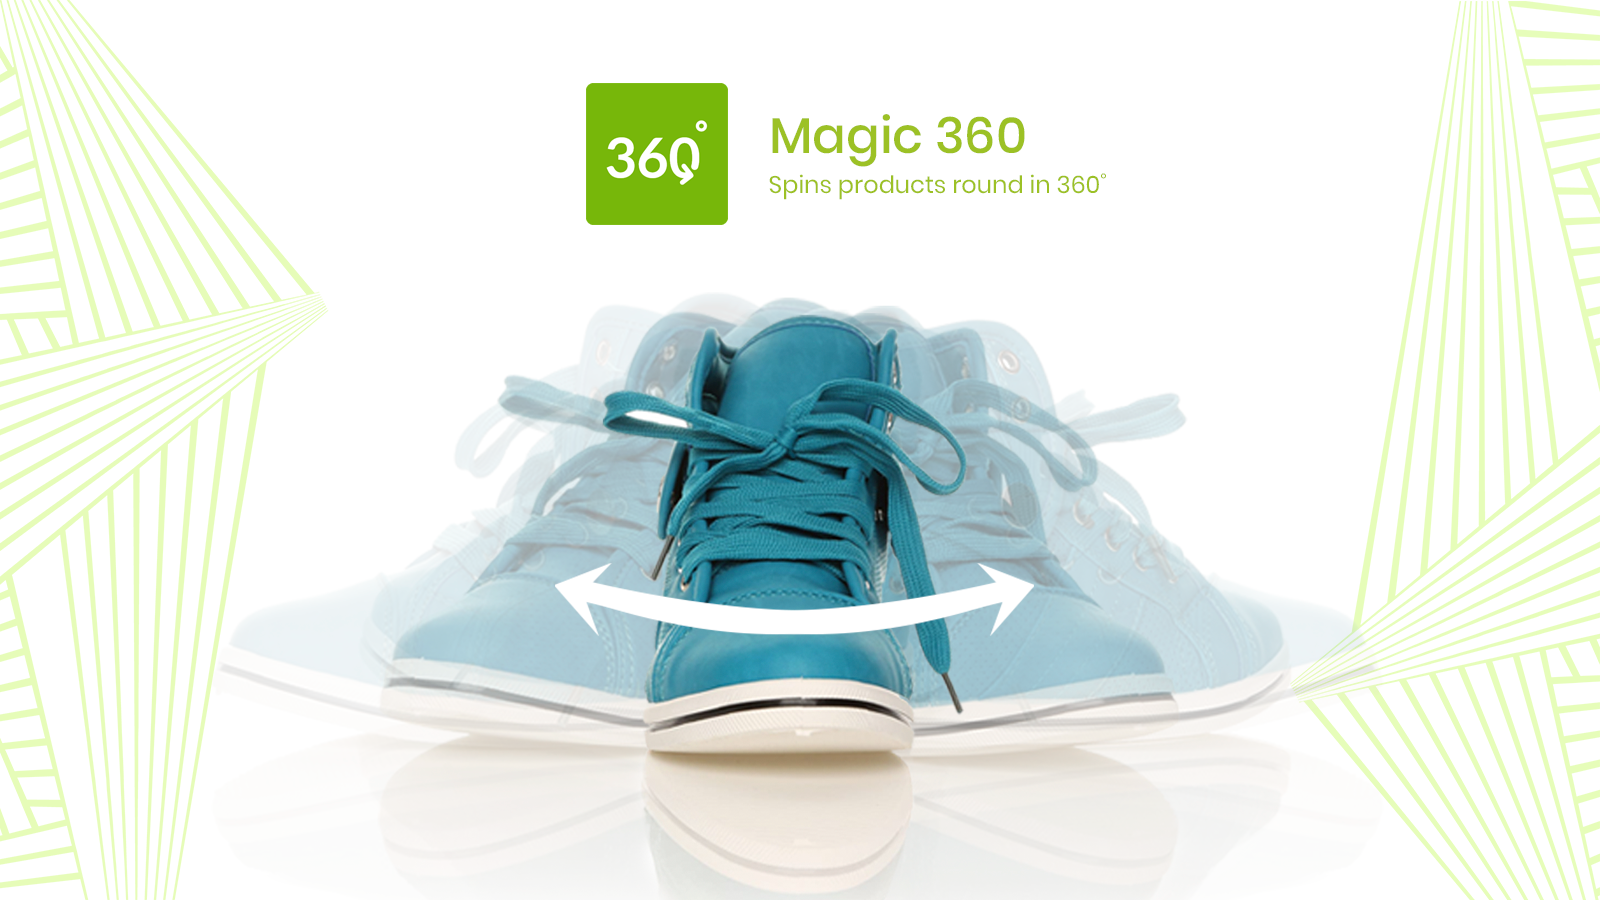 The ultimate 360 product spin